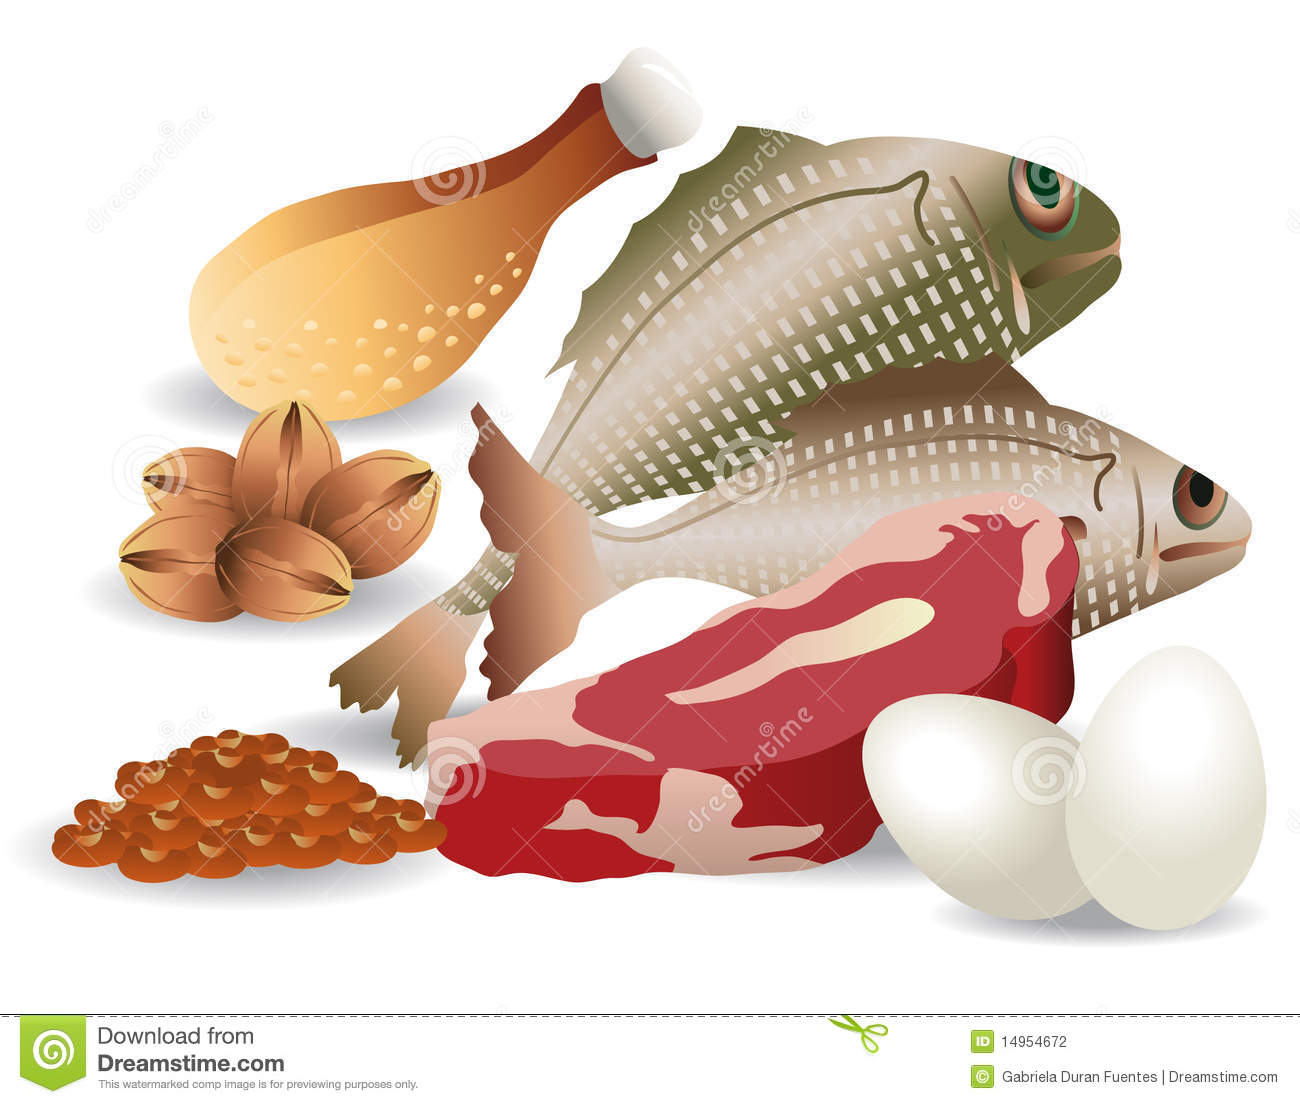 Meat Chicken Fish Clipart - Clipart Kid